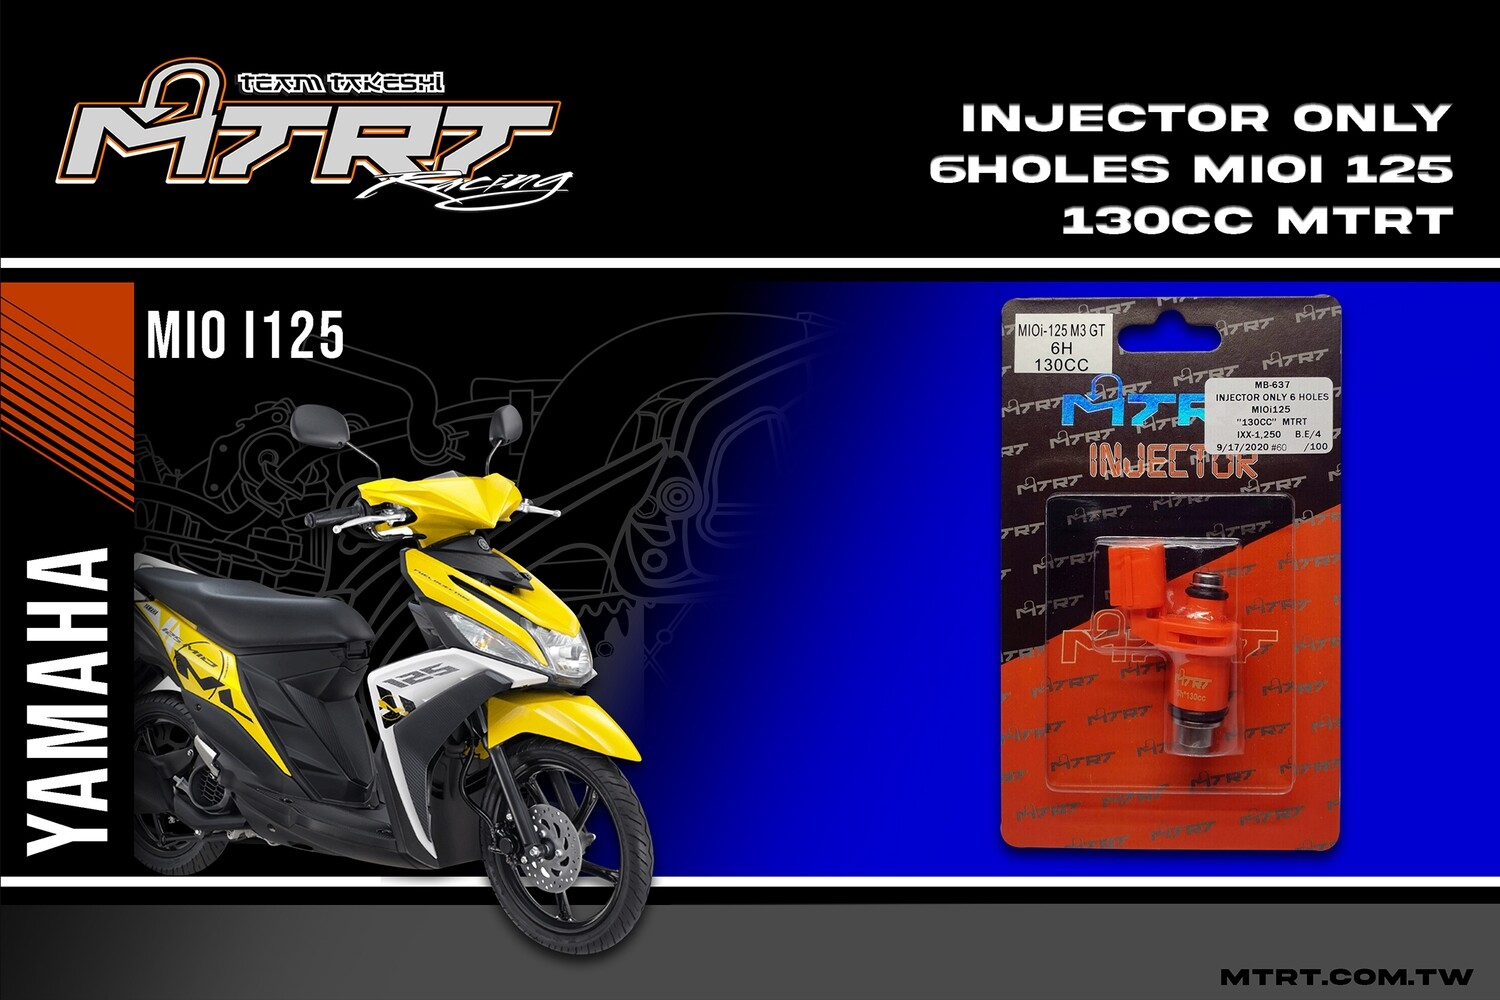 INJECTOR ONLY 6HOLES  MIOi125  130CC MTRT